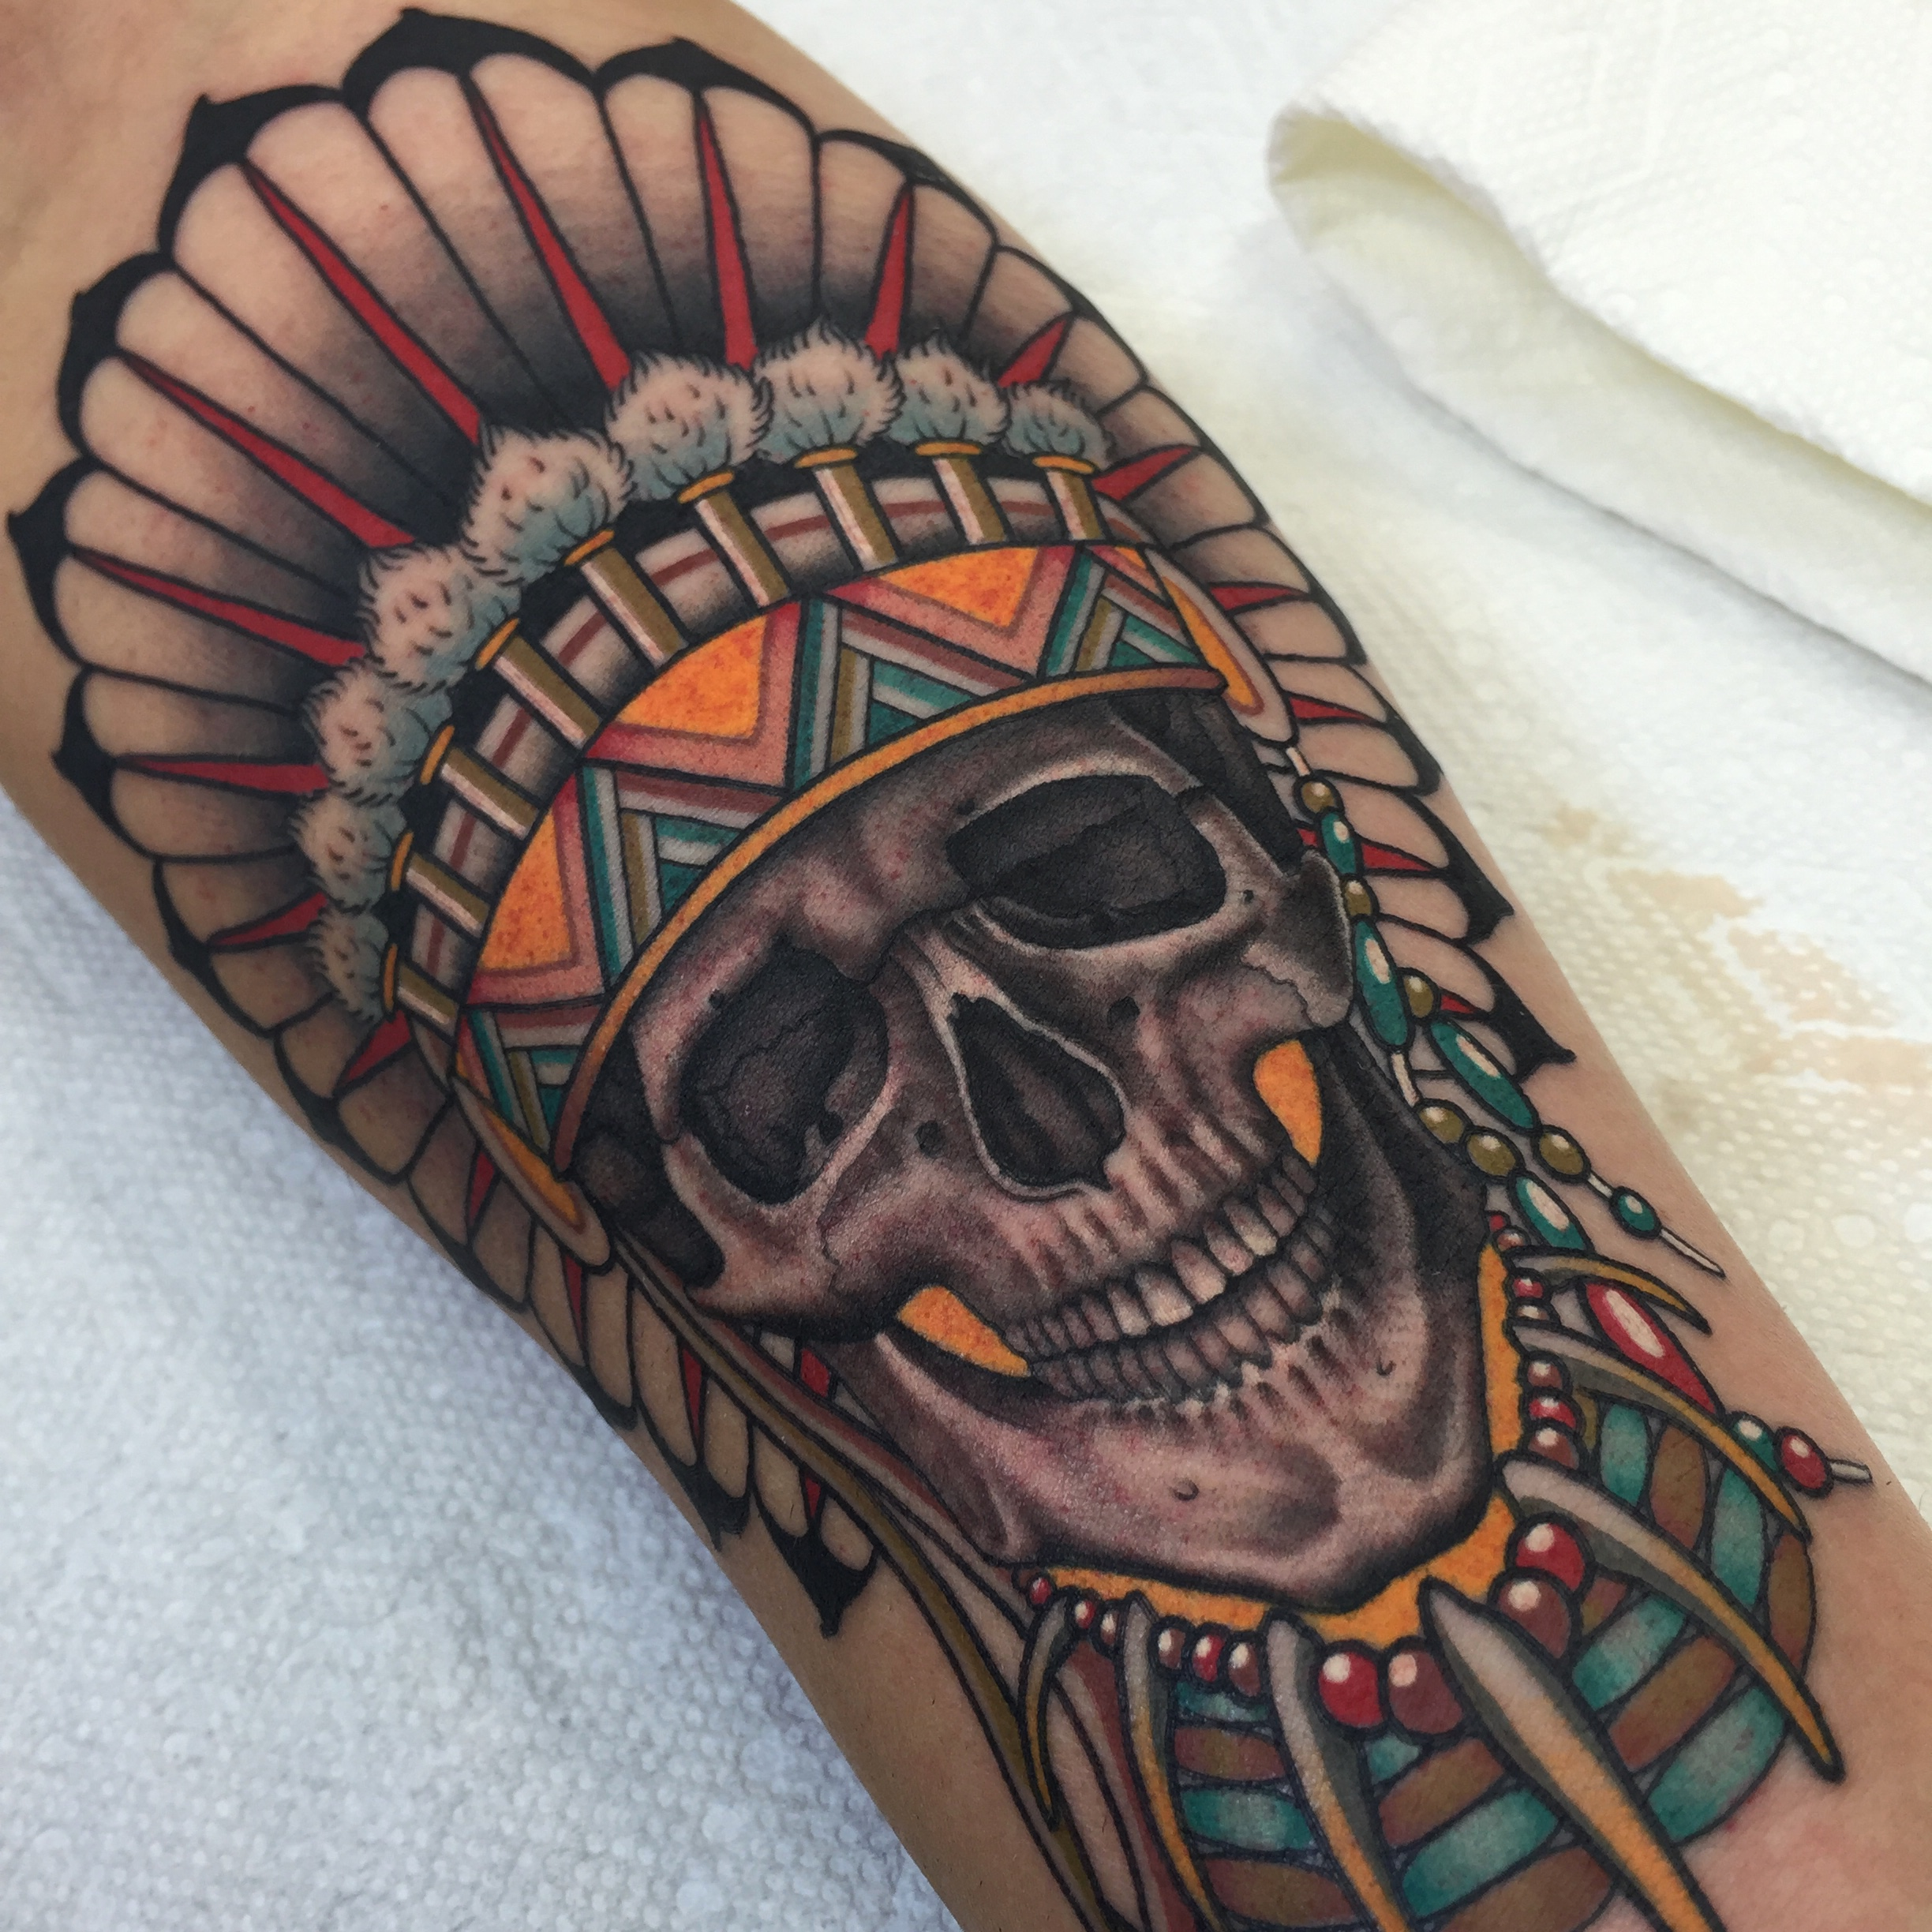 Skull & Chief's Headdress Tattoo